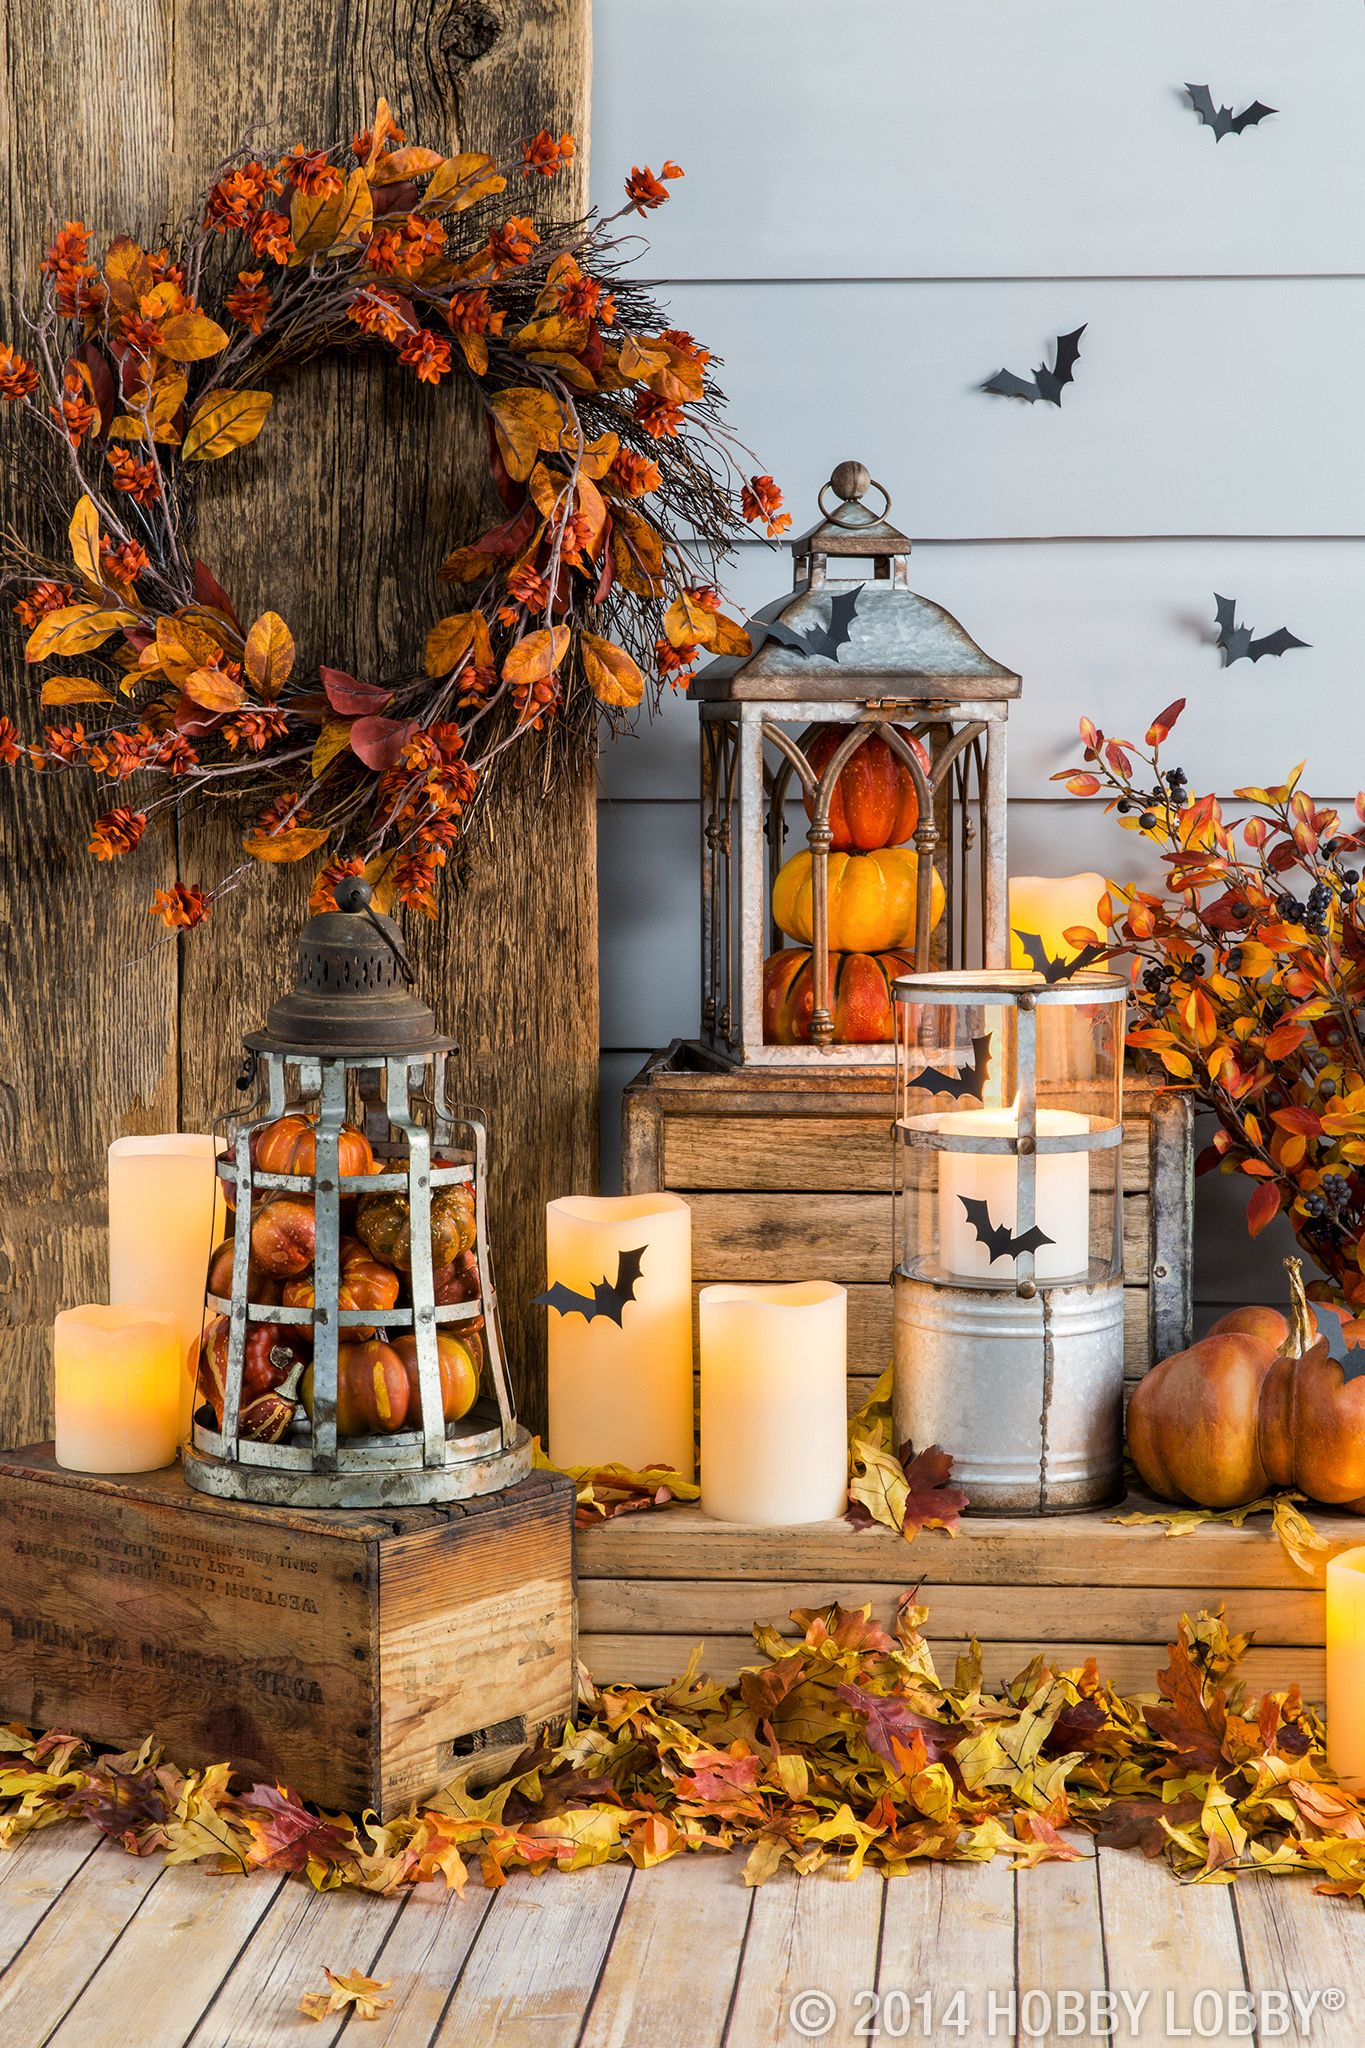 Fill lanterns with pumpkins and other fall pieces for an easy DIY - Hobby Lobby Halloween Decorations